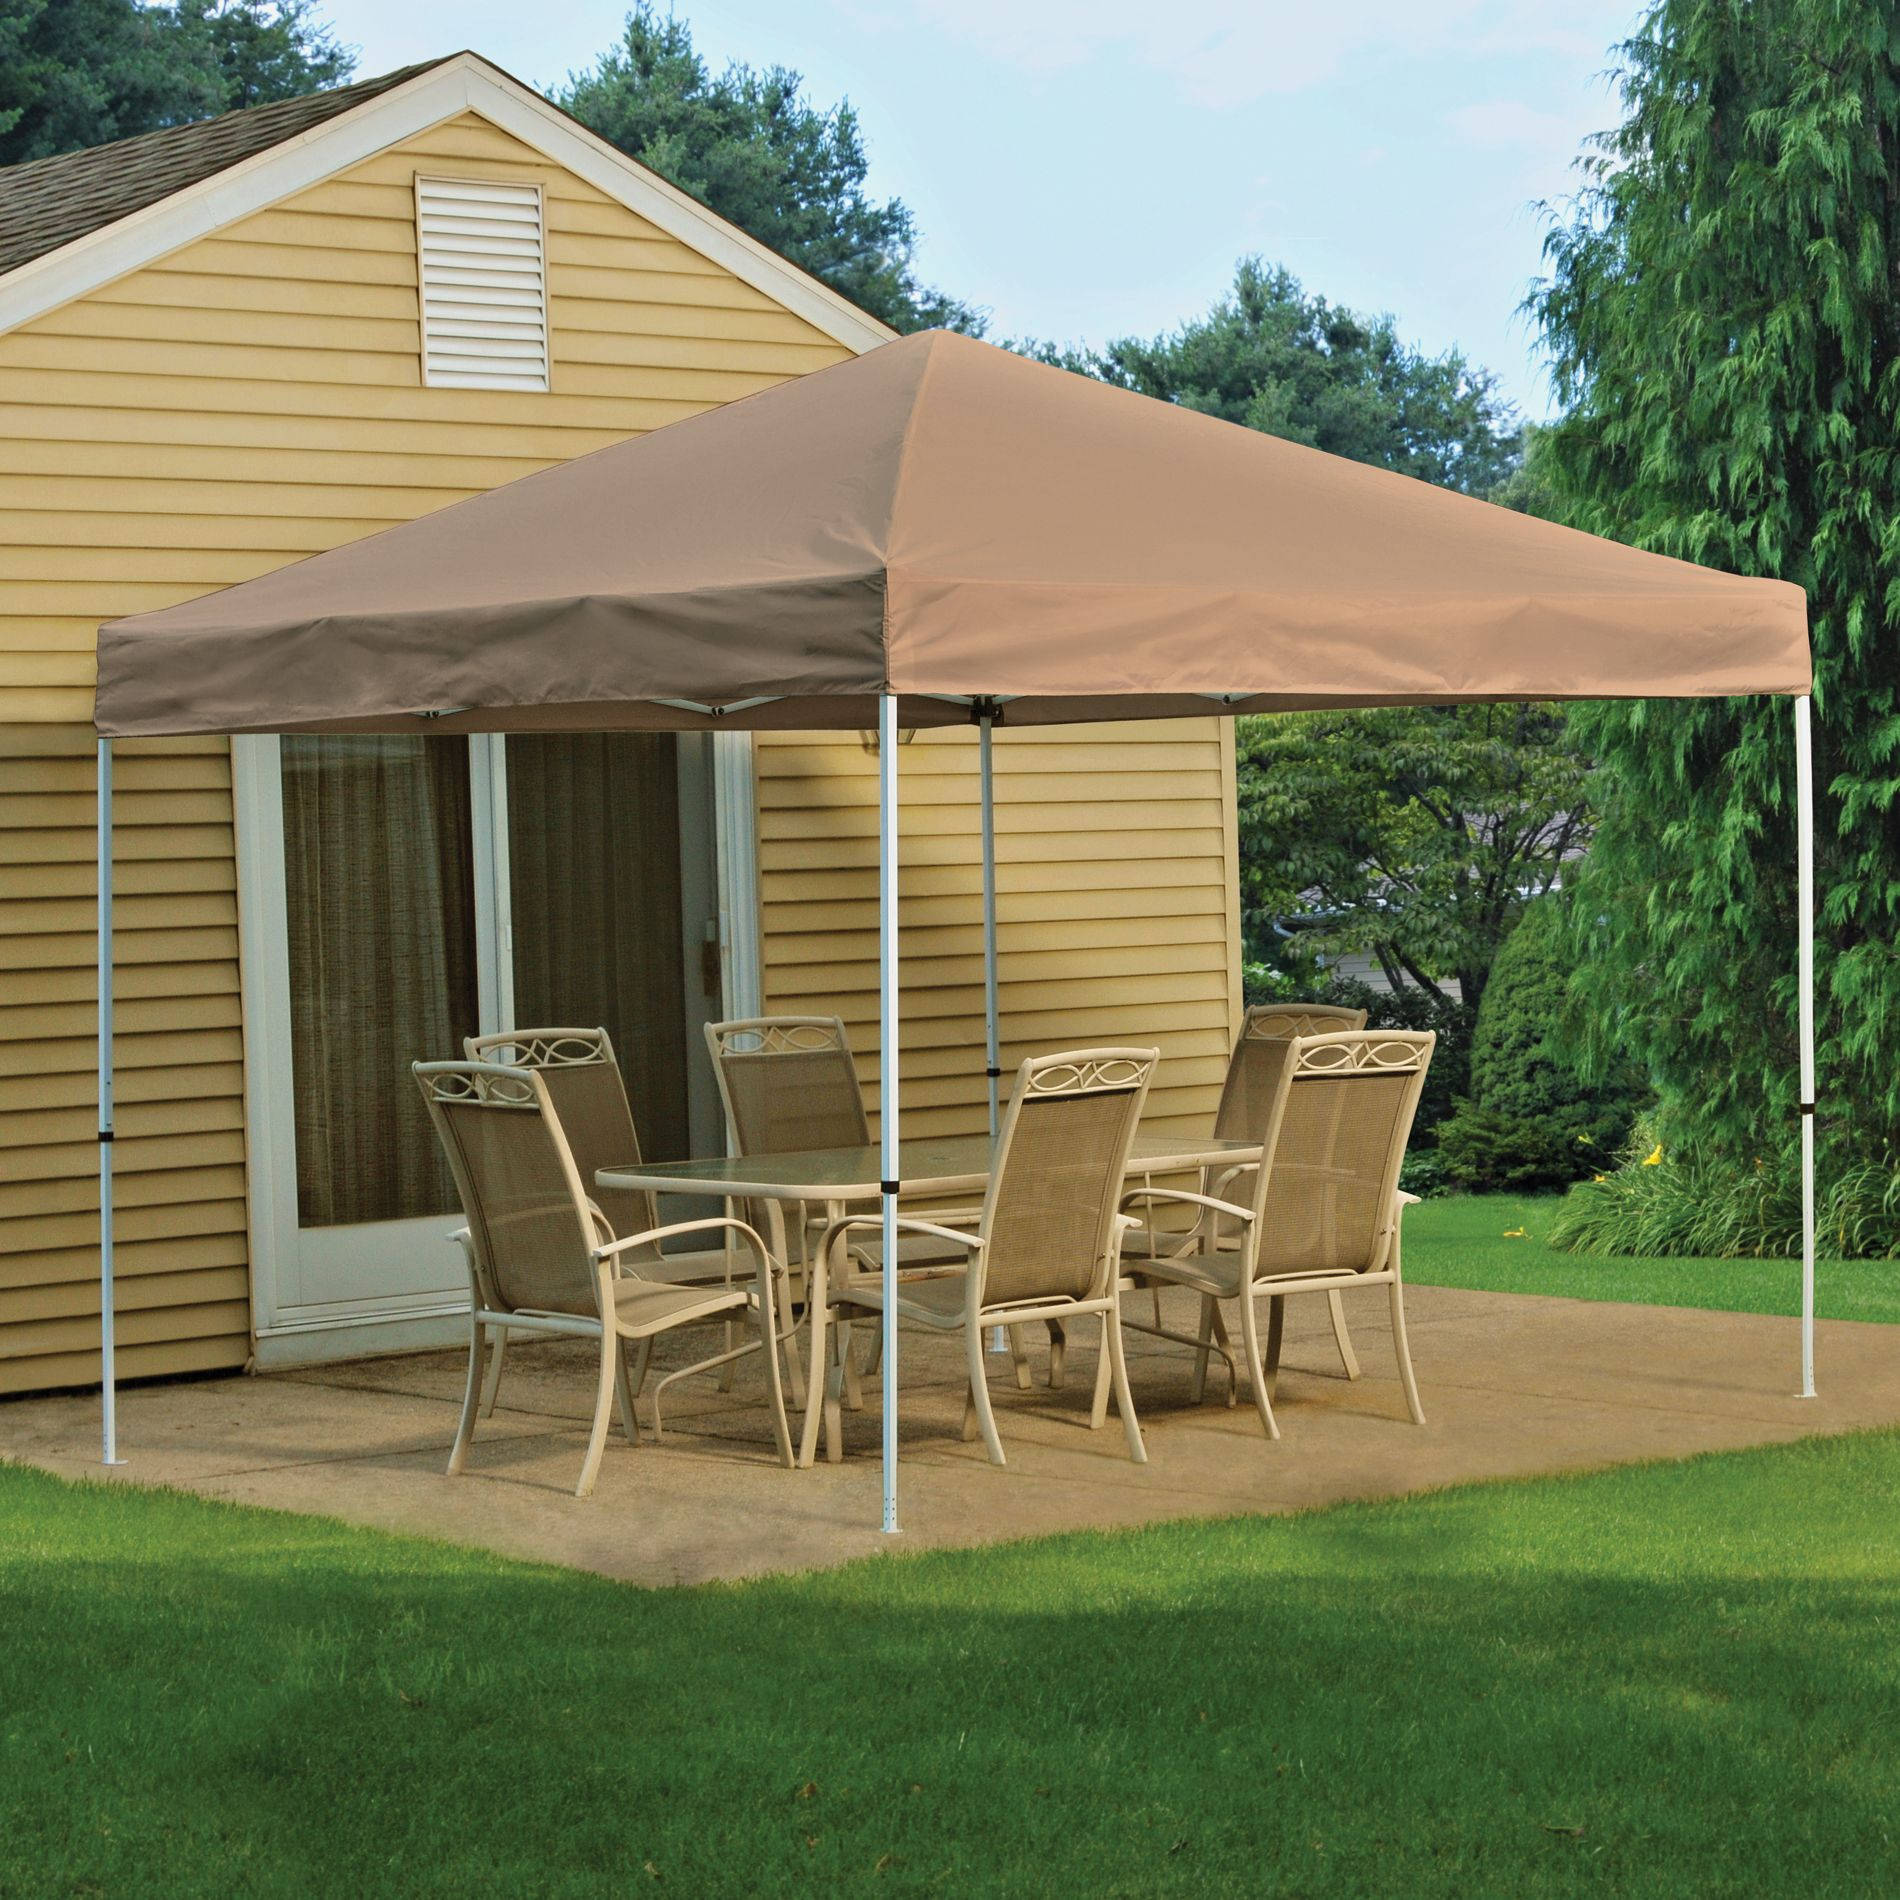 Screen Houses Stay Cool With Instant Canopies From Kmart